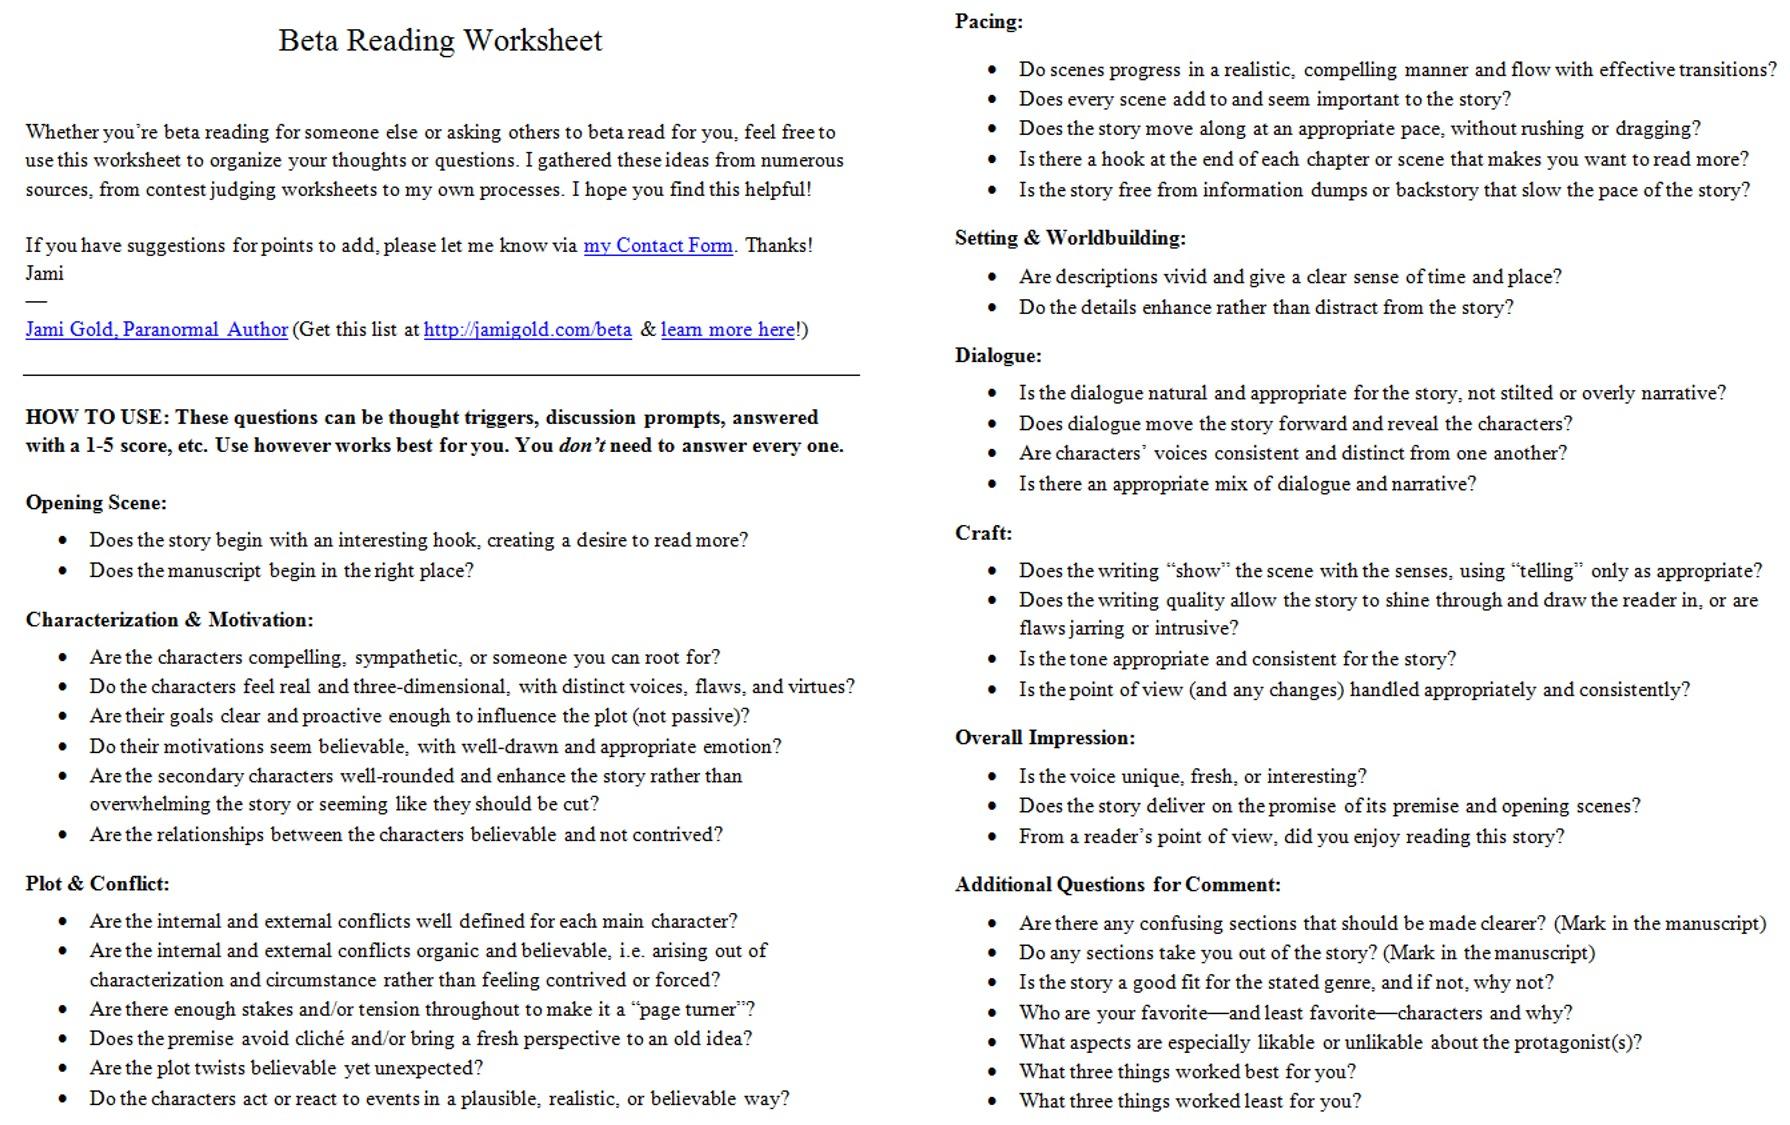 Weirdmailus  Splendid Worksheets For Writers  Jami Gold Paranormal Author With Exquisite Screen Shot Of The Twopage Beta Reading Worksheet With Beauteous Pattern Rule Worksheets Also Free Math Worksheets For Grade  In Addition Grade  Rounding Numbers Worksheets And Days Of The Week Free Worksheets As Well As Grade  Vocabulary Worksheets Additionally English Worksheet For Kids From Jamigoldcom With Weirdmailus  Exquisite Worksheets For Writers  Jami Gold Paranormal Author With Beauteous Screen Shot Of The Twopage Beta Reading Worksheet And Splendid Pattern Rule Worksheets Also Free Math Worksheets For Grade  In Addition Grade  Rounding Numbers Worksheets From Jamigoldcom